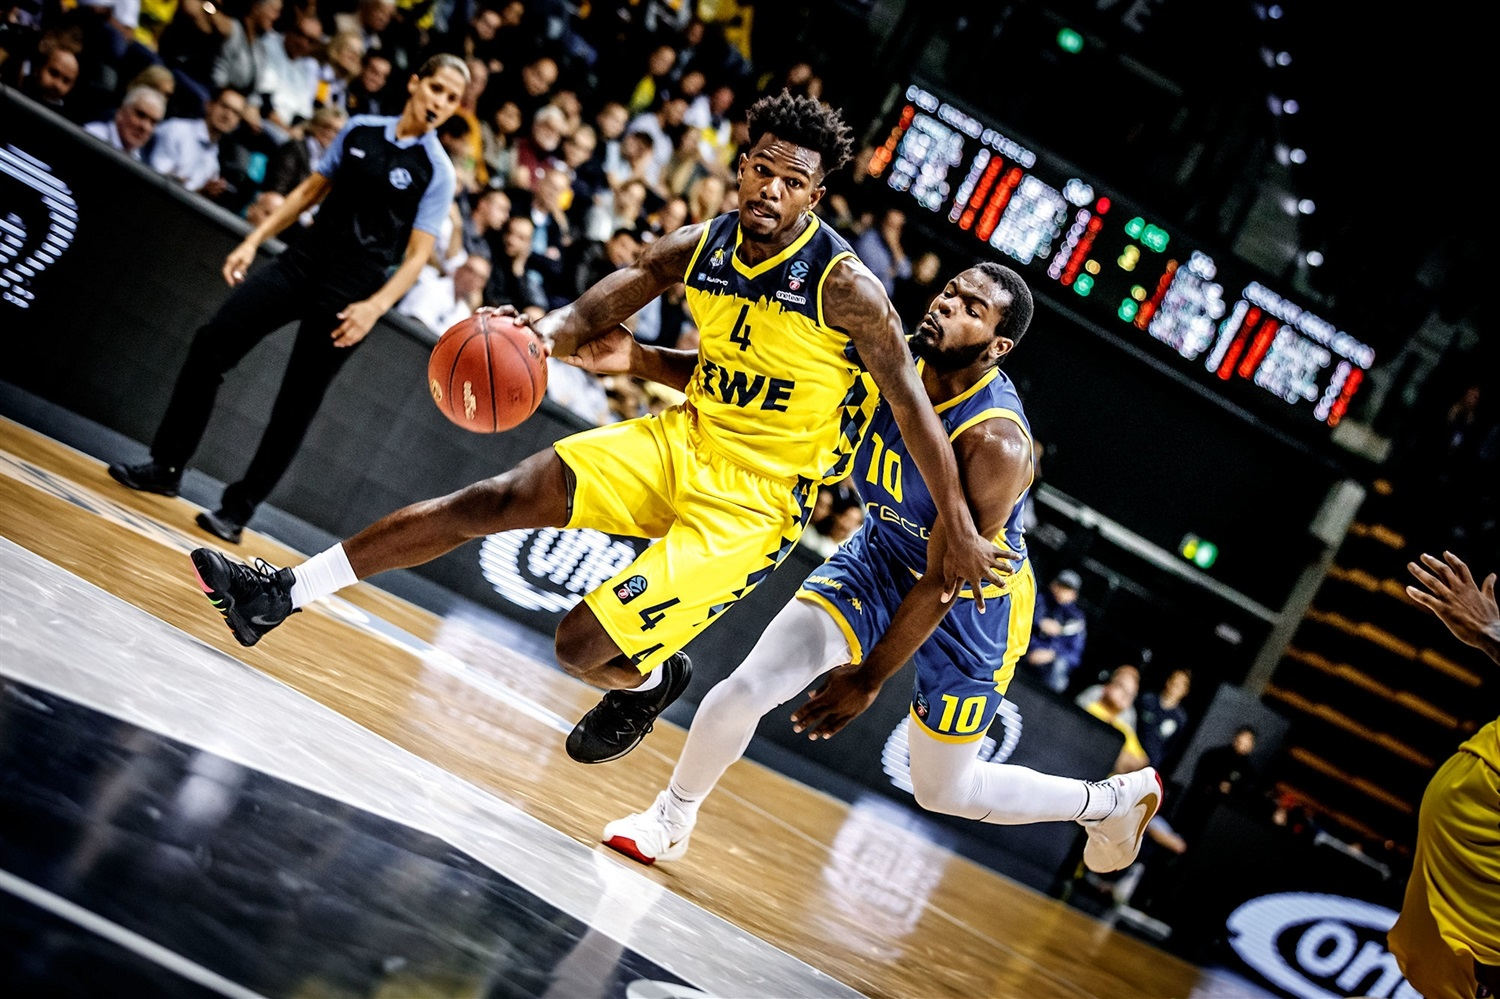 Gerry Blakes - EWE Baskets Oldenburg (photo Ulf Duda - fotoduda.de) - EC19